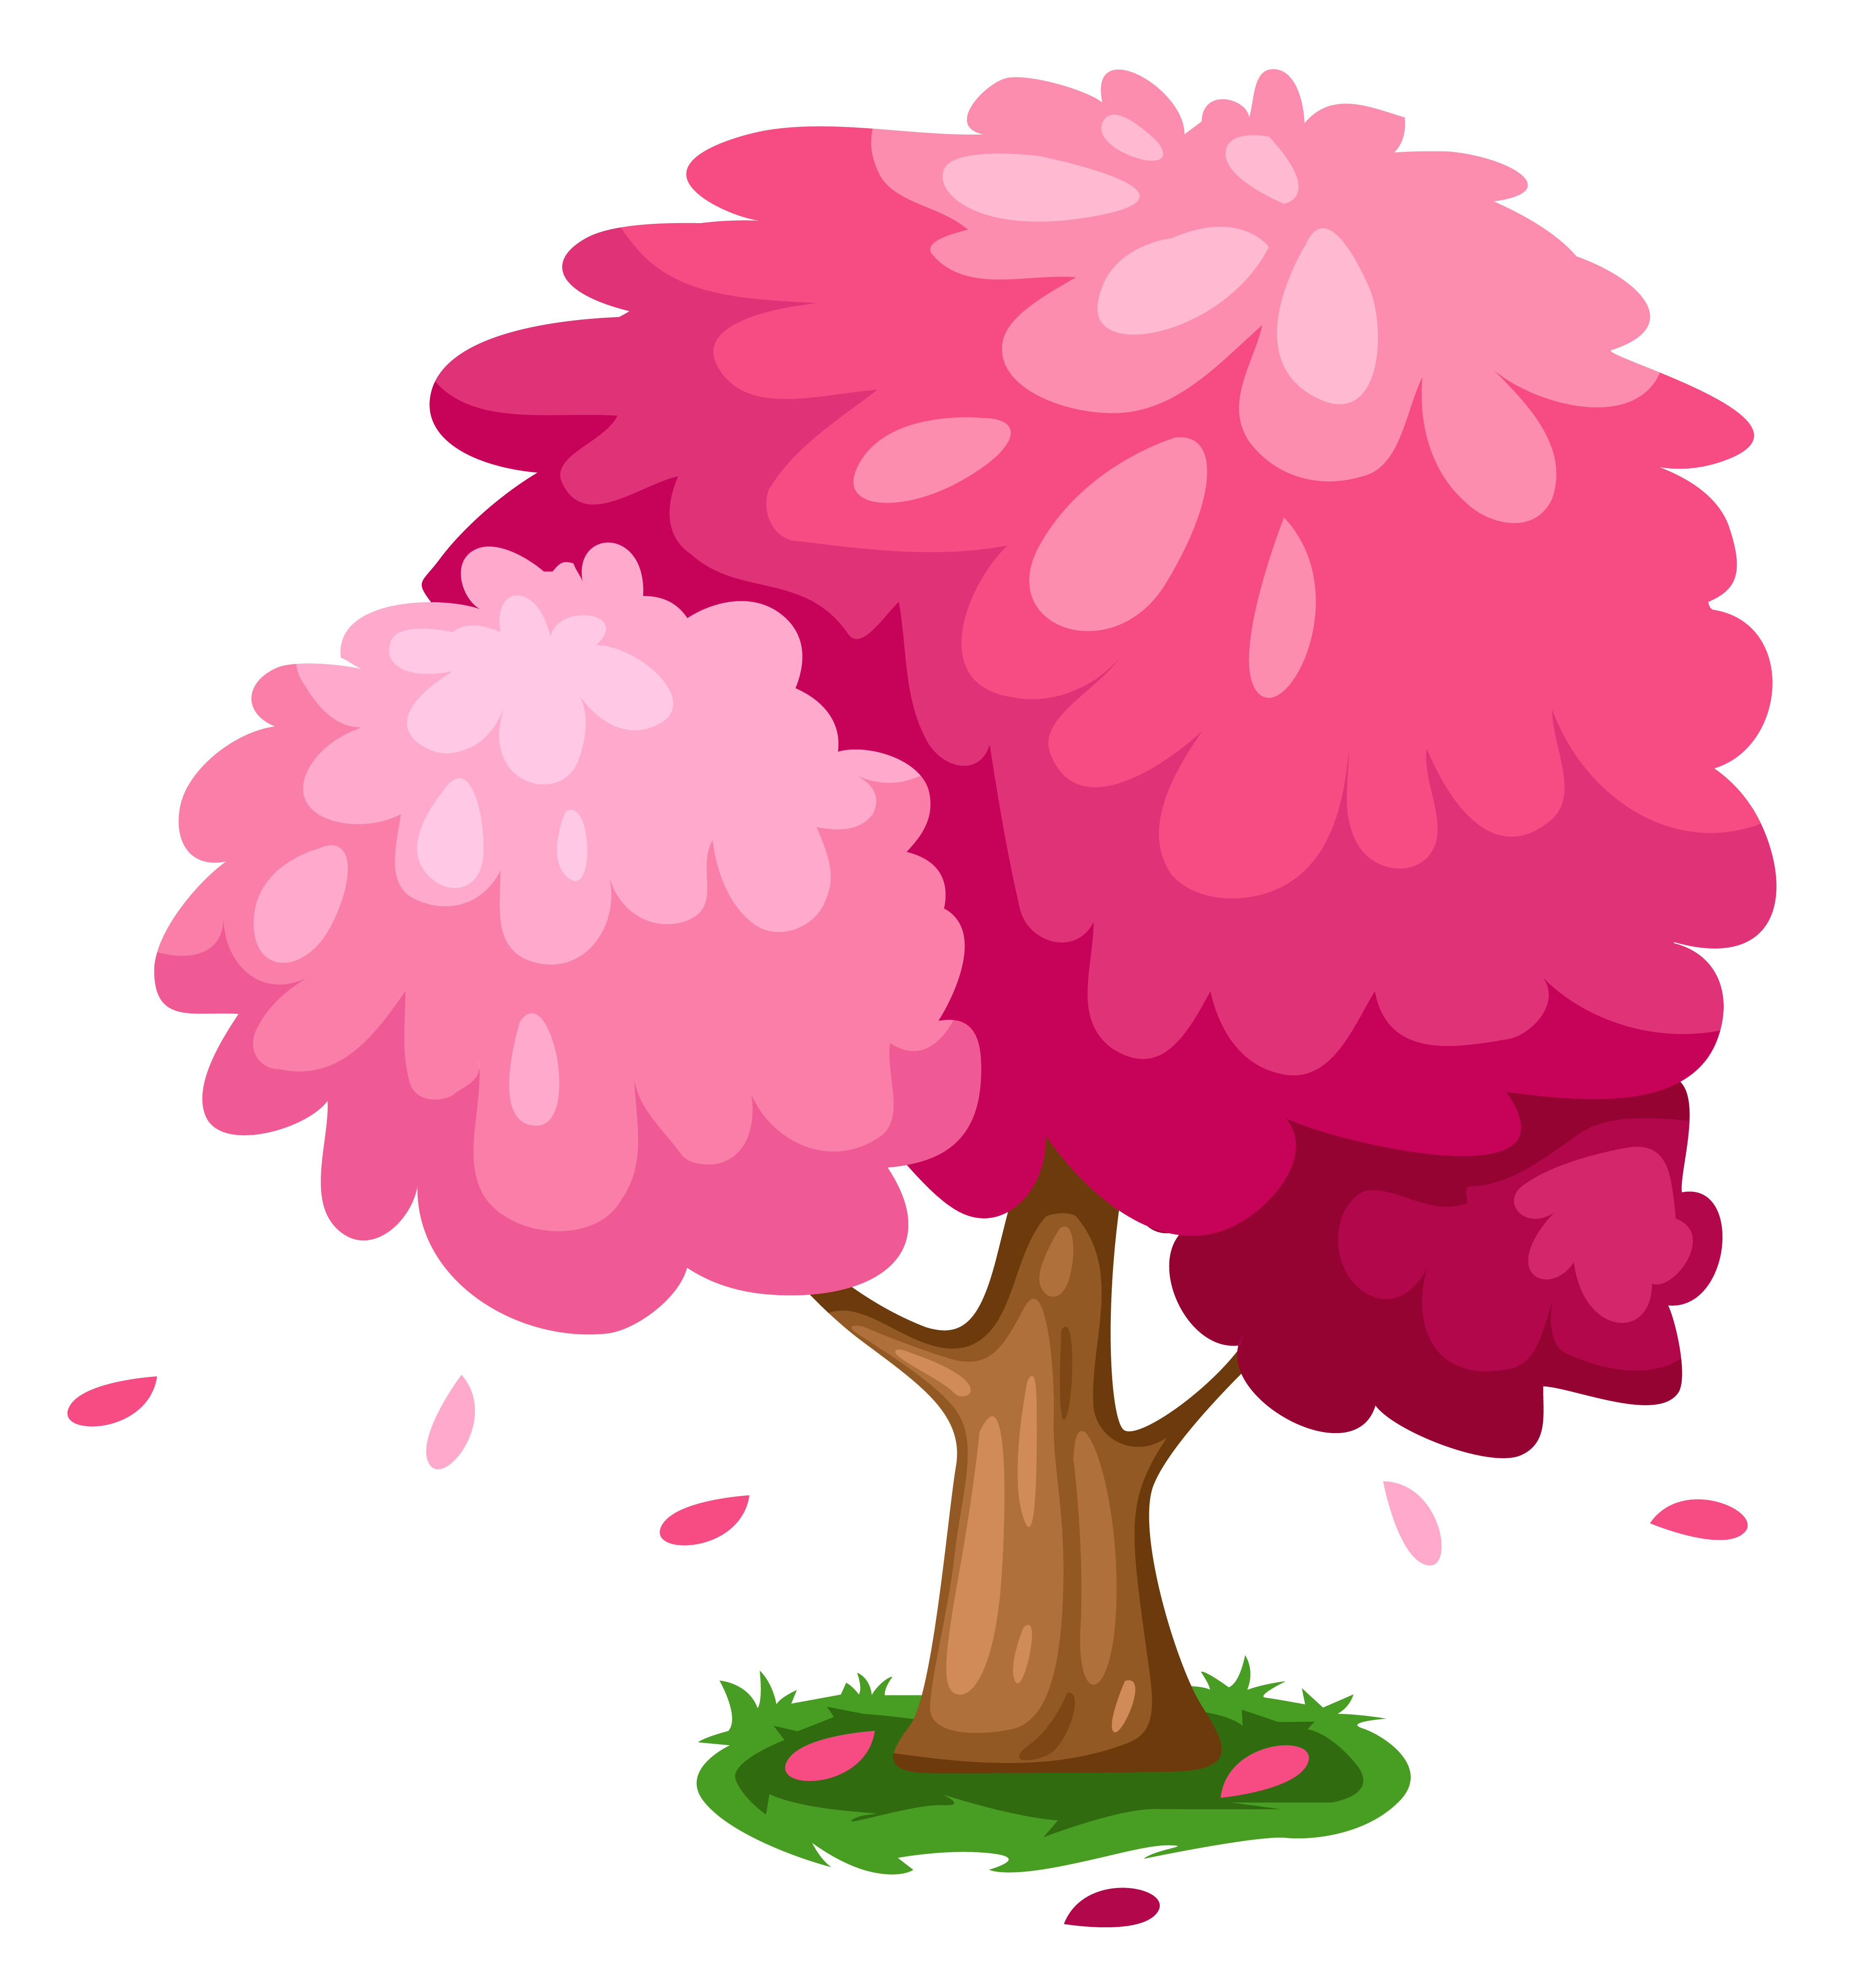 pritty clipart tree